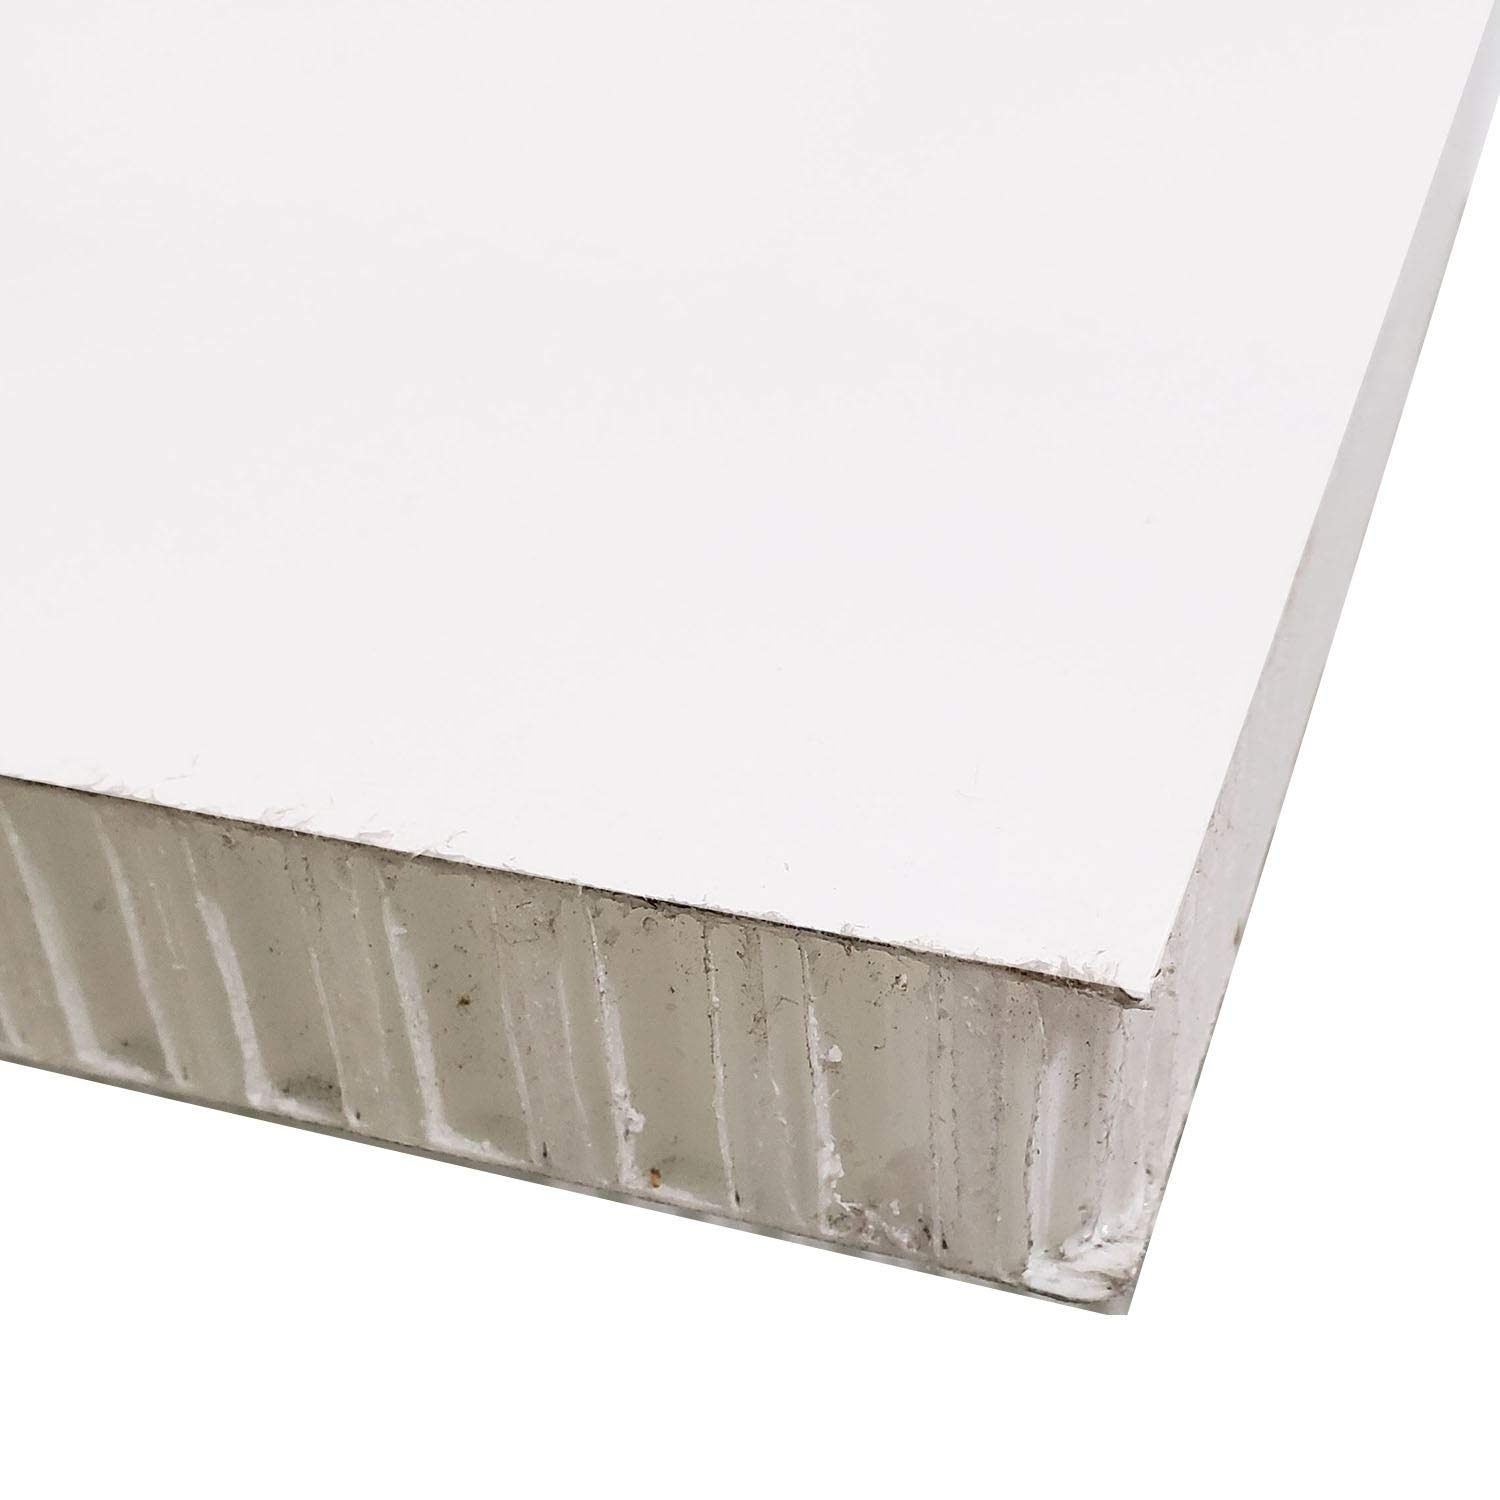 Online Metal Supply FRP Honeycomb Panel, 0.500'' (1/2'') x 12 inches x 24 inches, White by Online Metal Supply